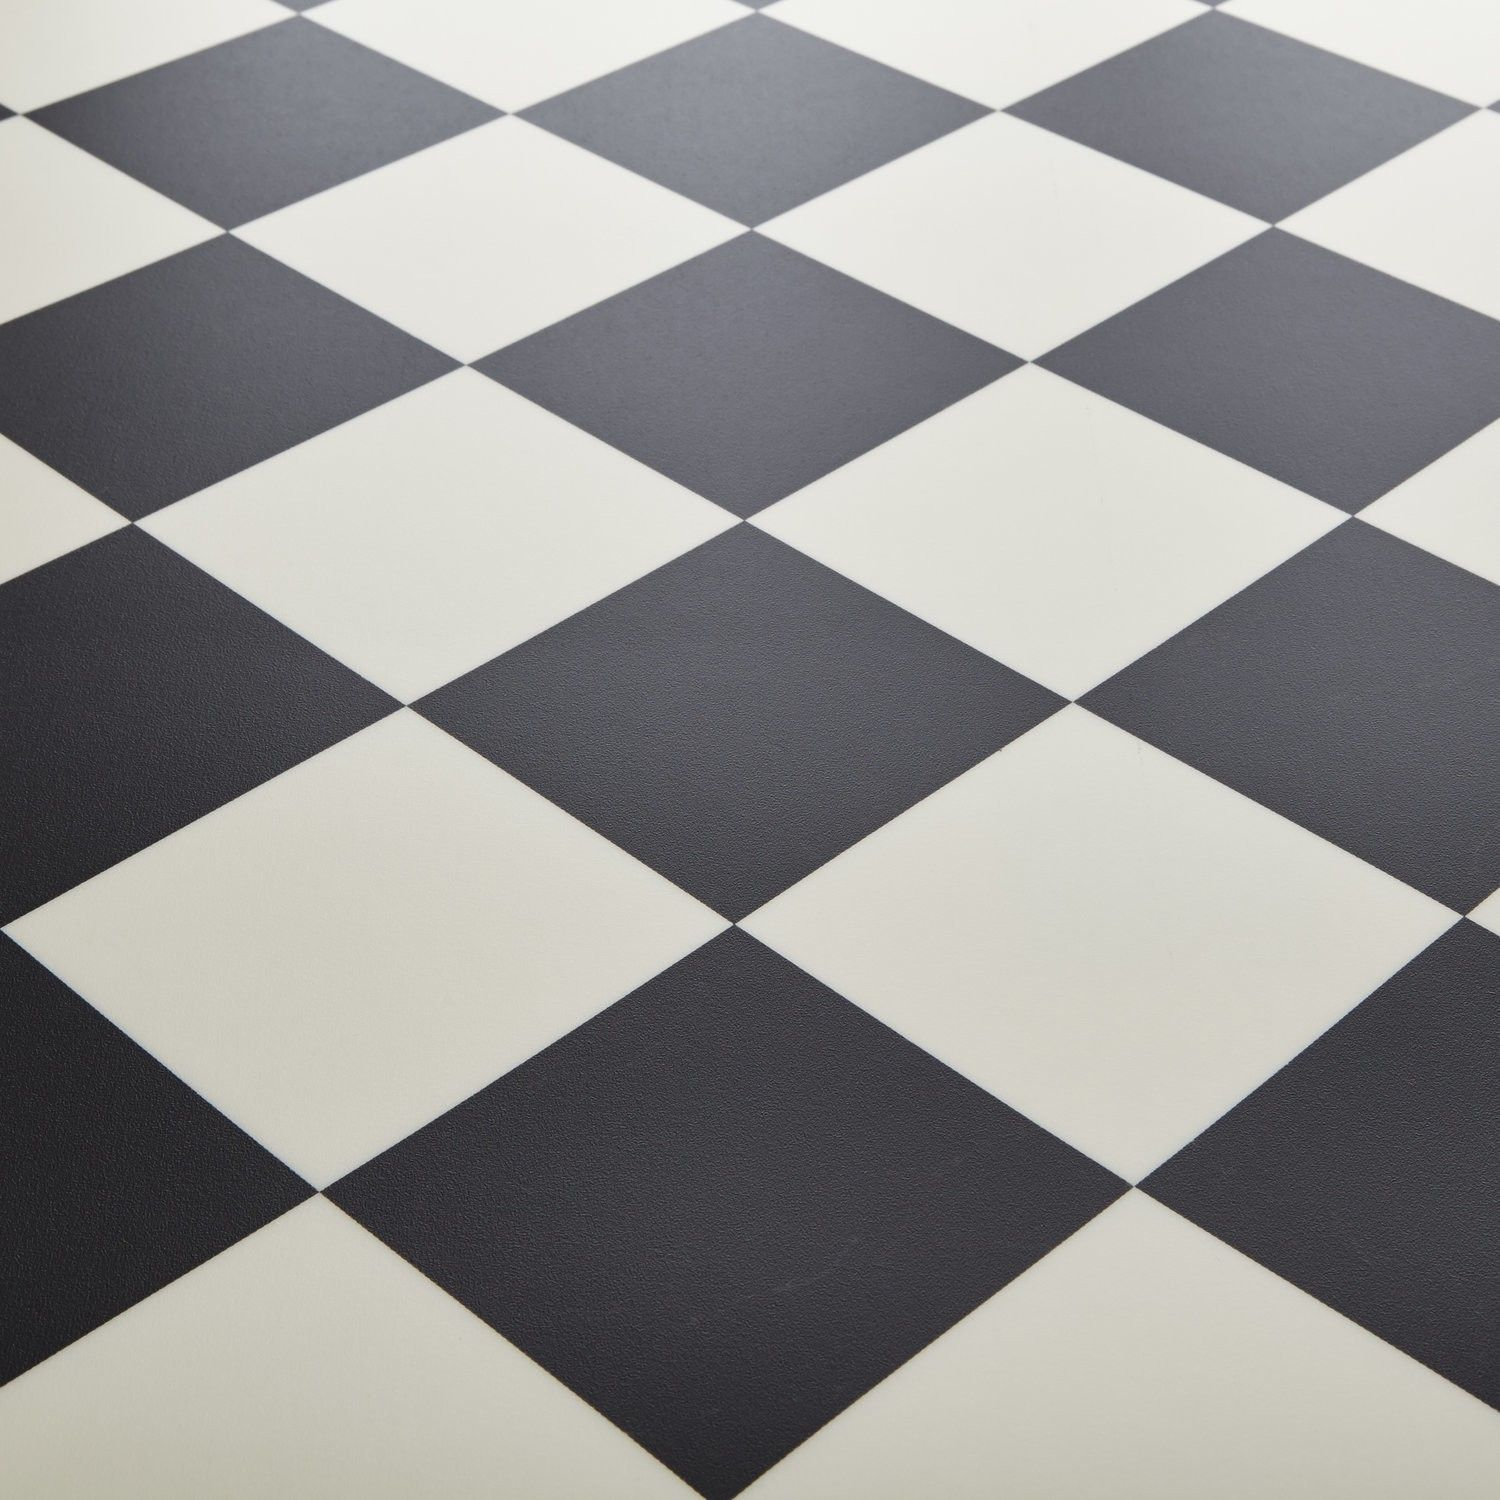 Ideas Black And White Checkered Vinyl Floor Tiles Uk Floor Decoration With Regard To Dimensions 1500 Vinyl Flooring Kitchen Vinyl Flooring Vinyl Tile Flooring